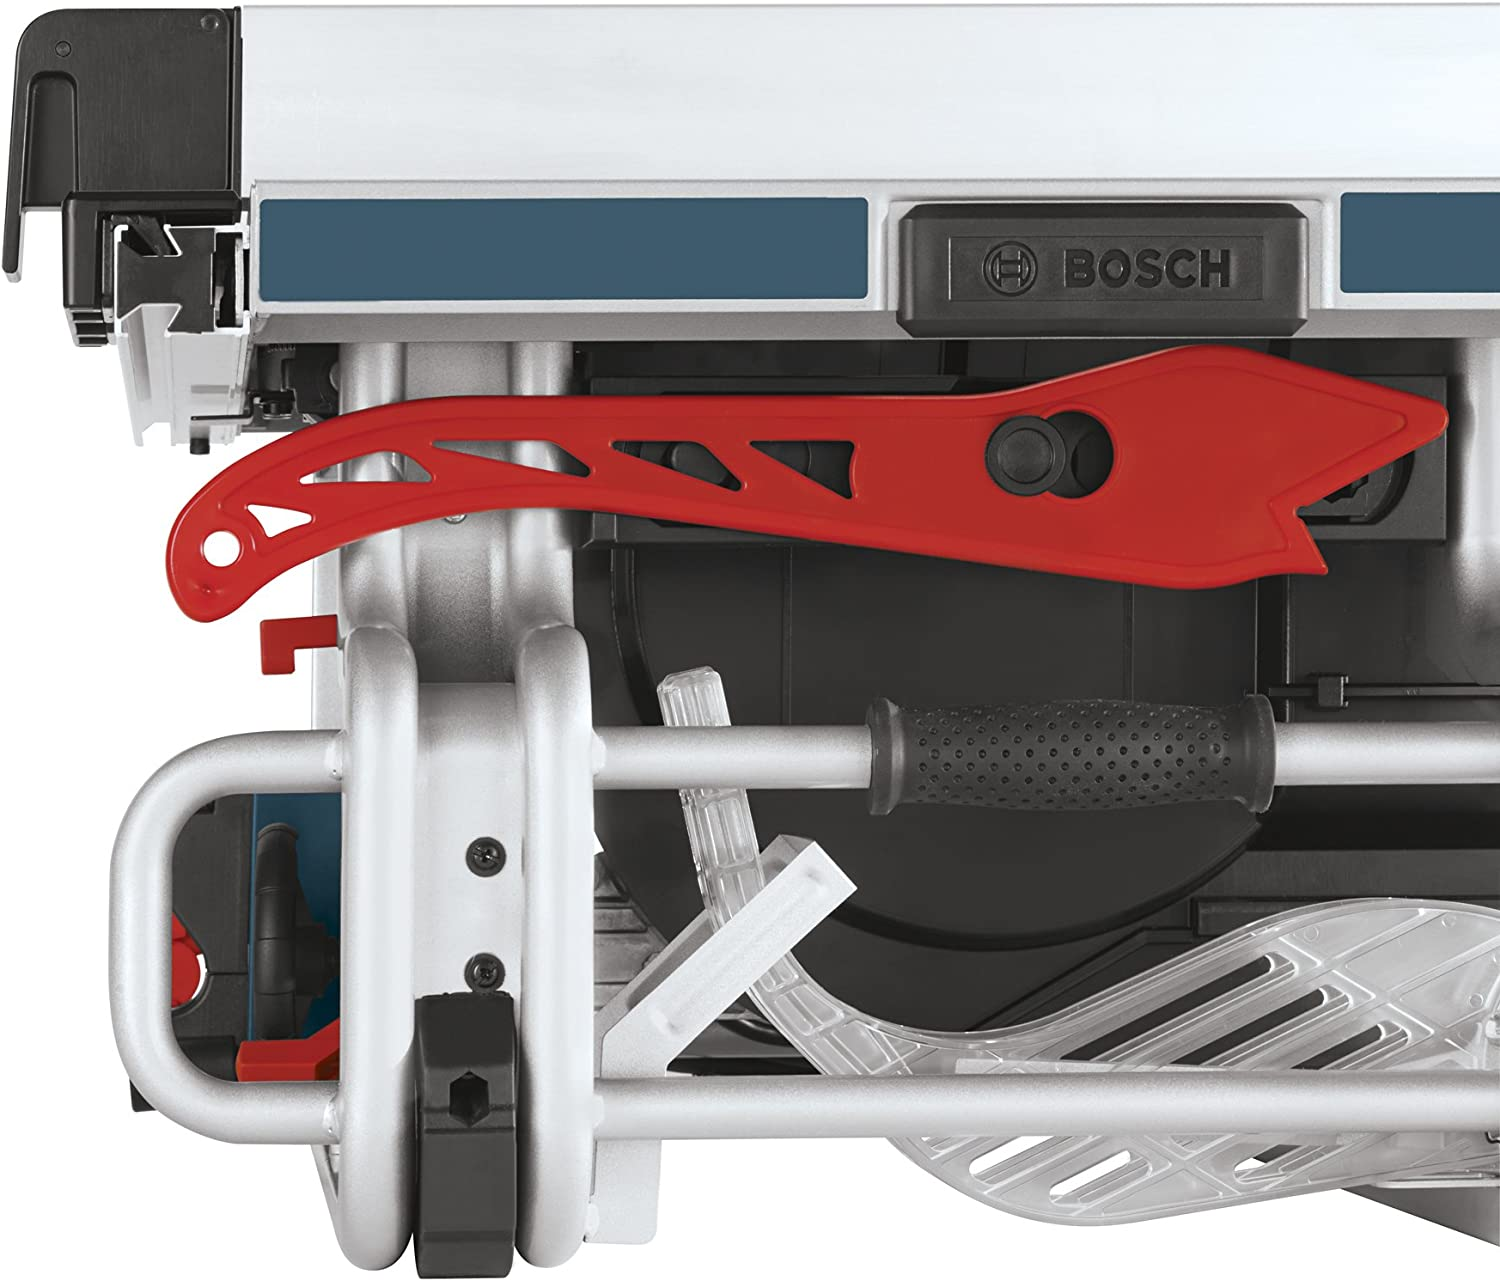 Bosch GTS1031 Table Saws product image 12